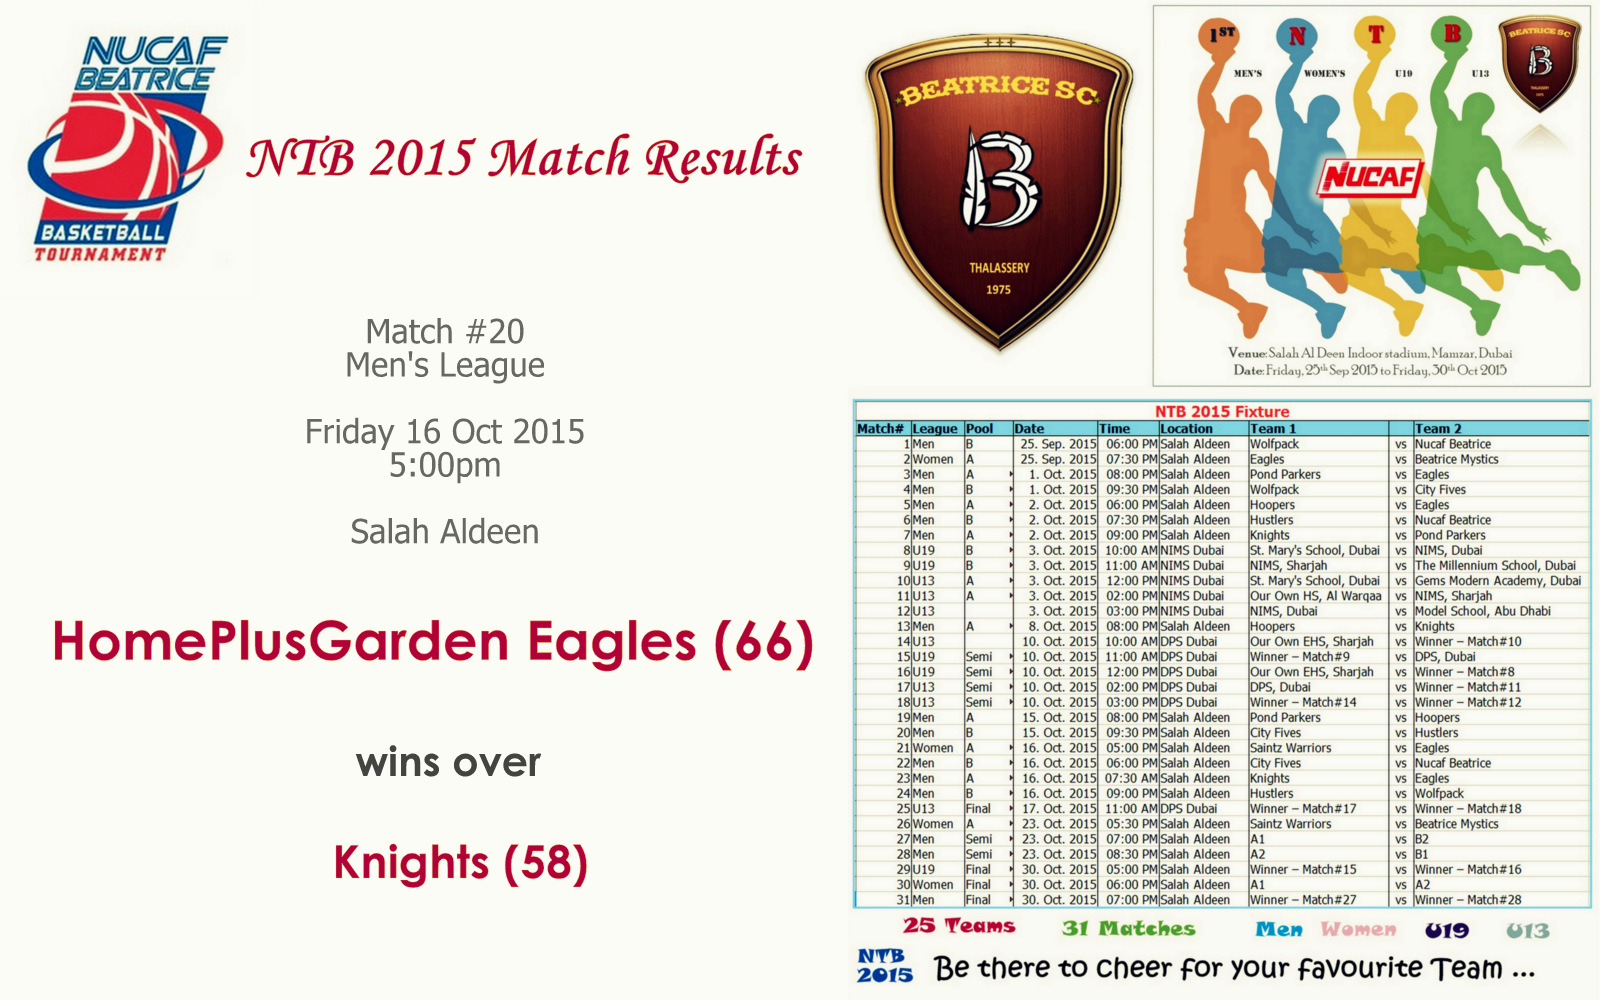 NTB 2015 – Match #20 | Knights (58) Vs HomePlusGarden Eagles (66)